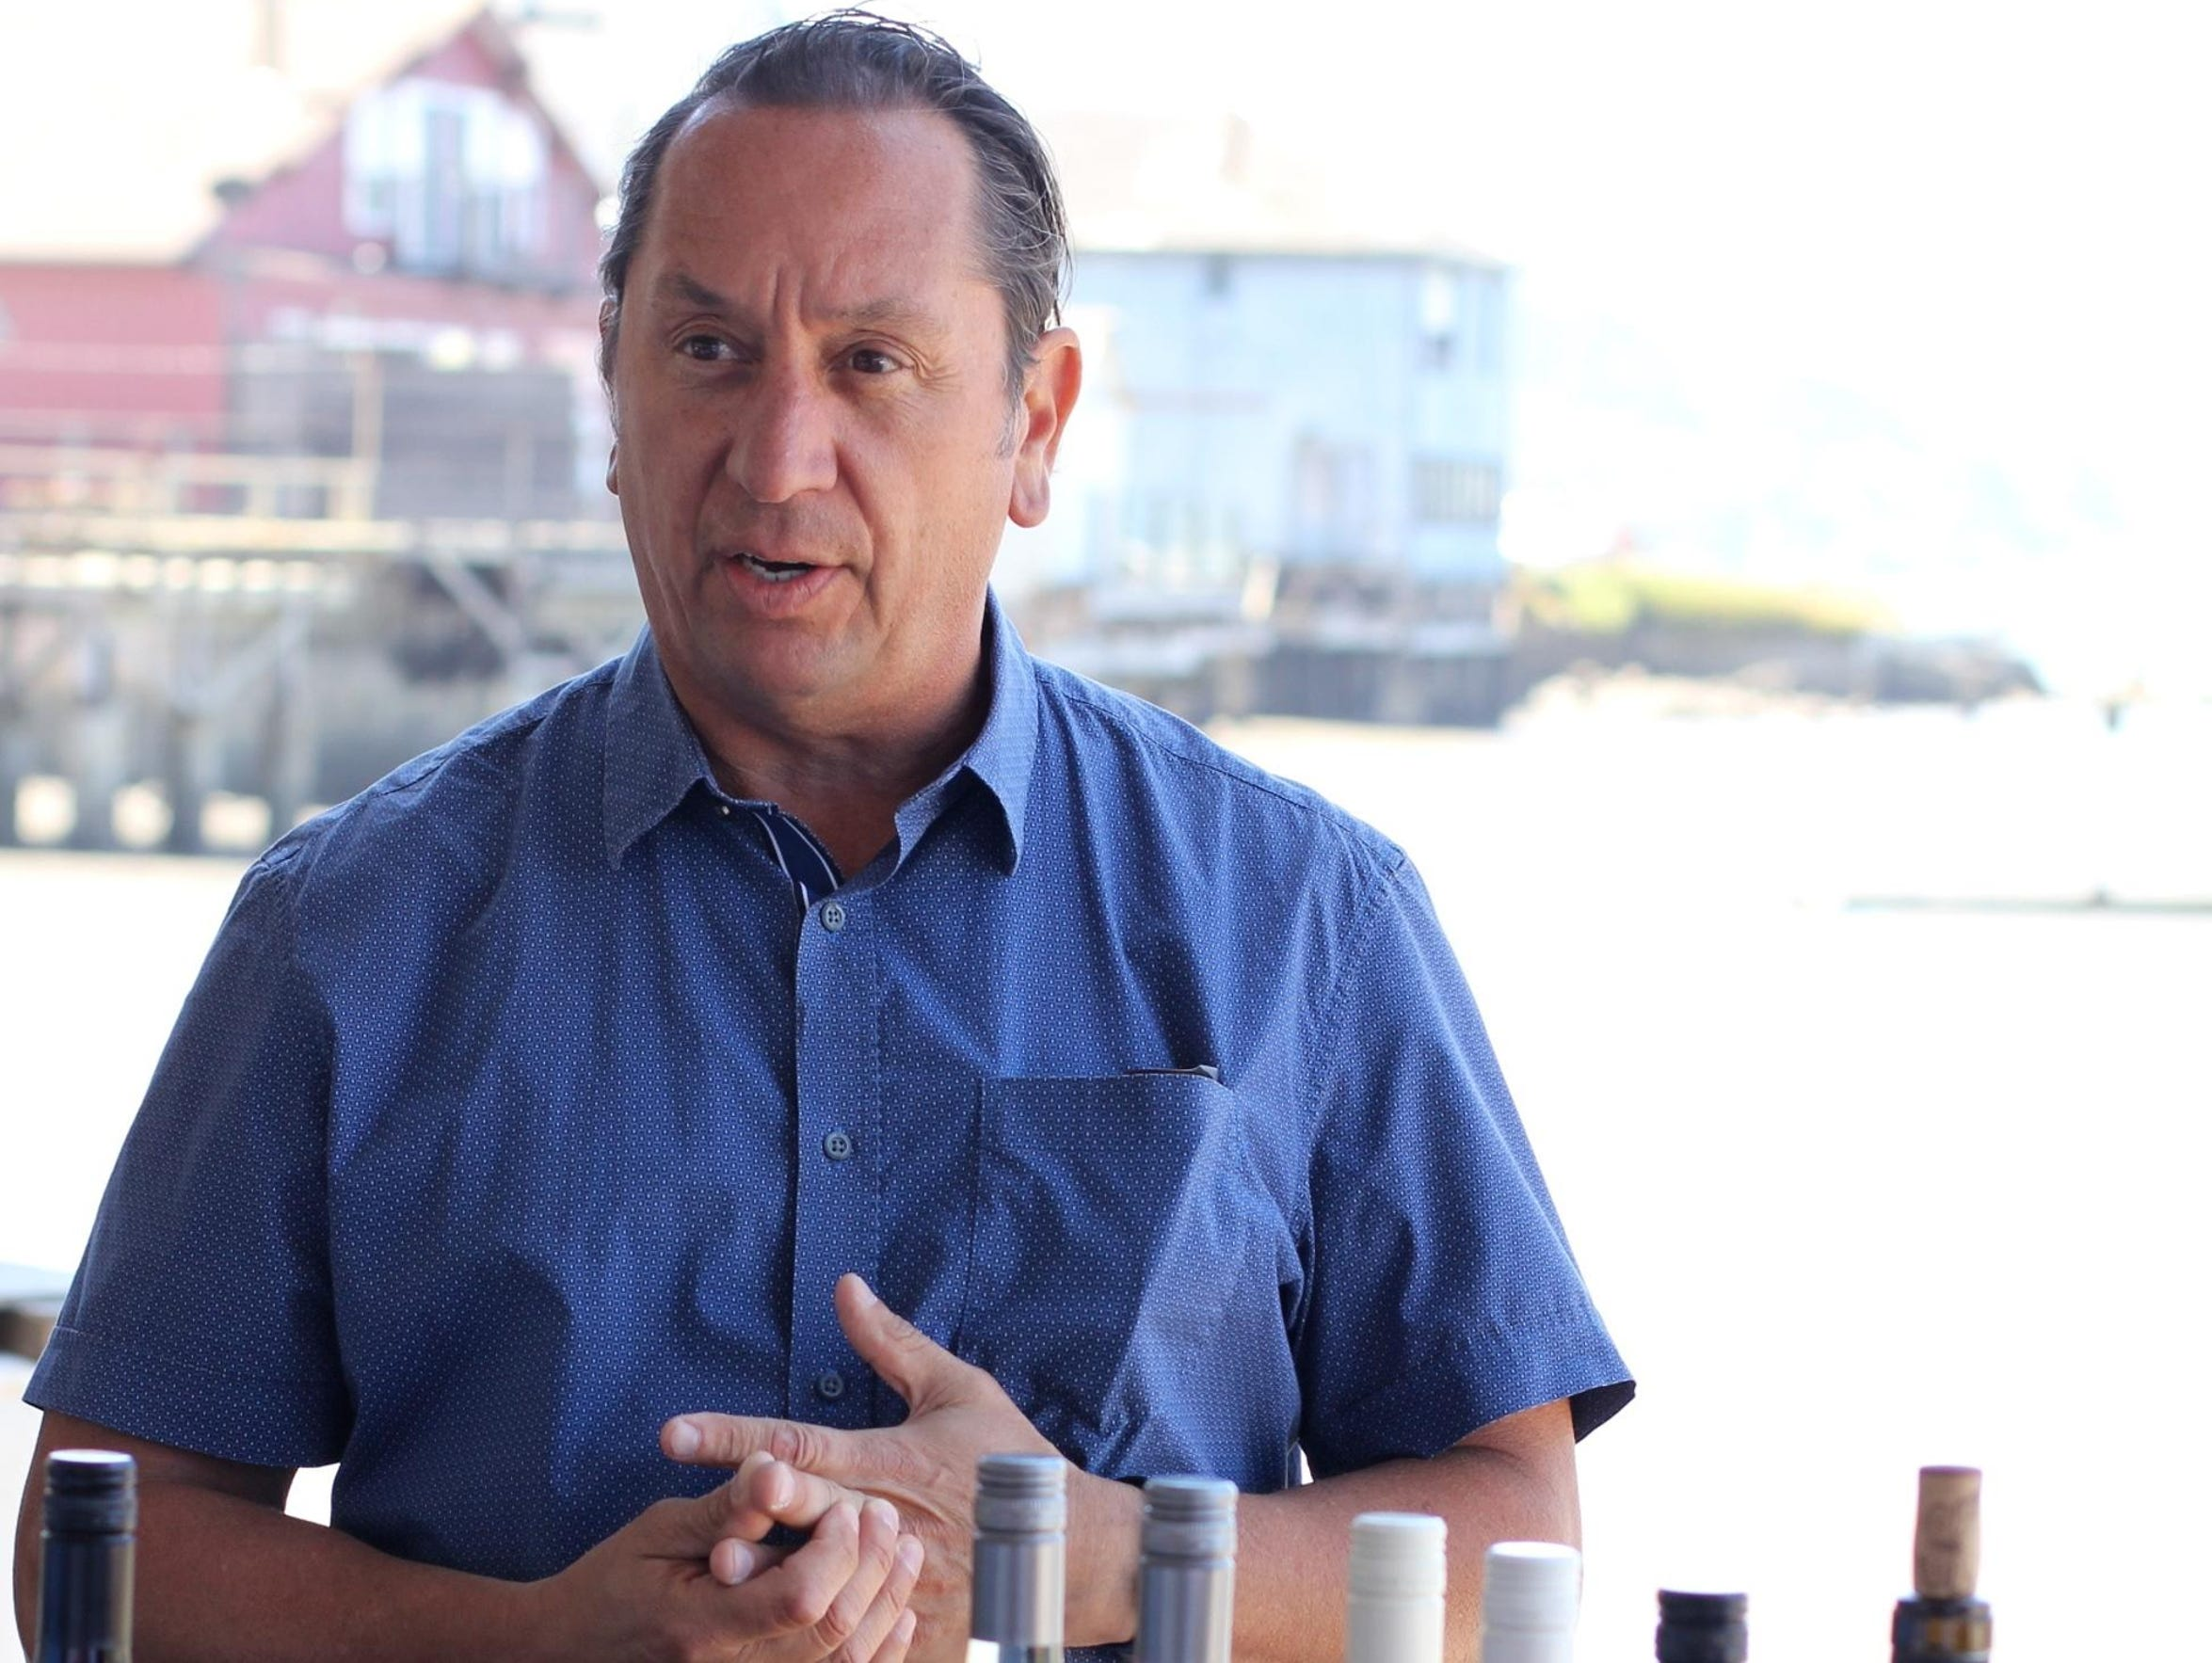 At a lunch on Tomales Bay in Marin County, Chuck Hernandez